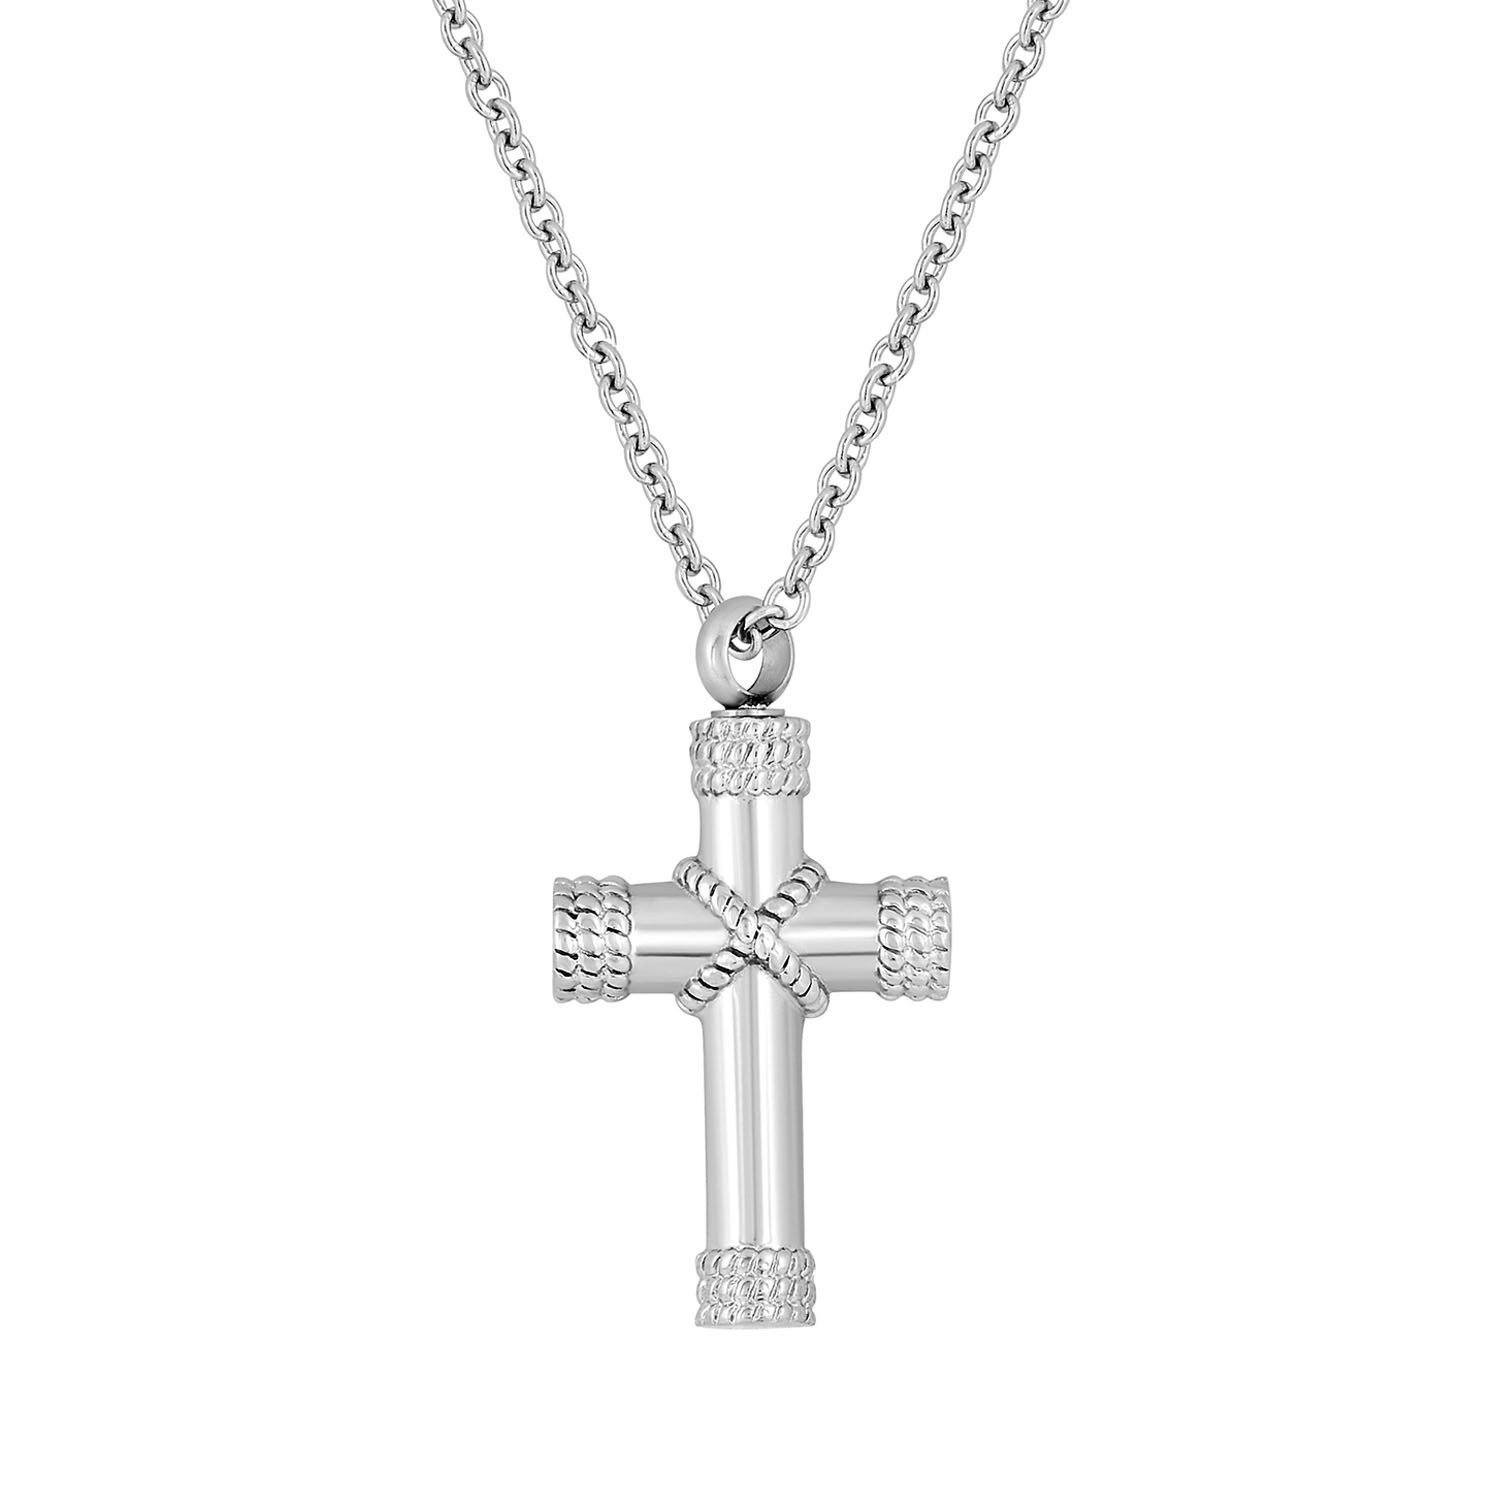 Cremation Jewelry Necklace for Ashes - Cross Necklace